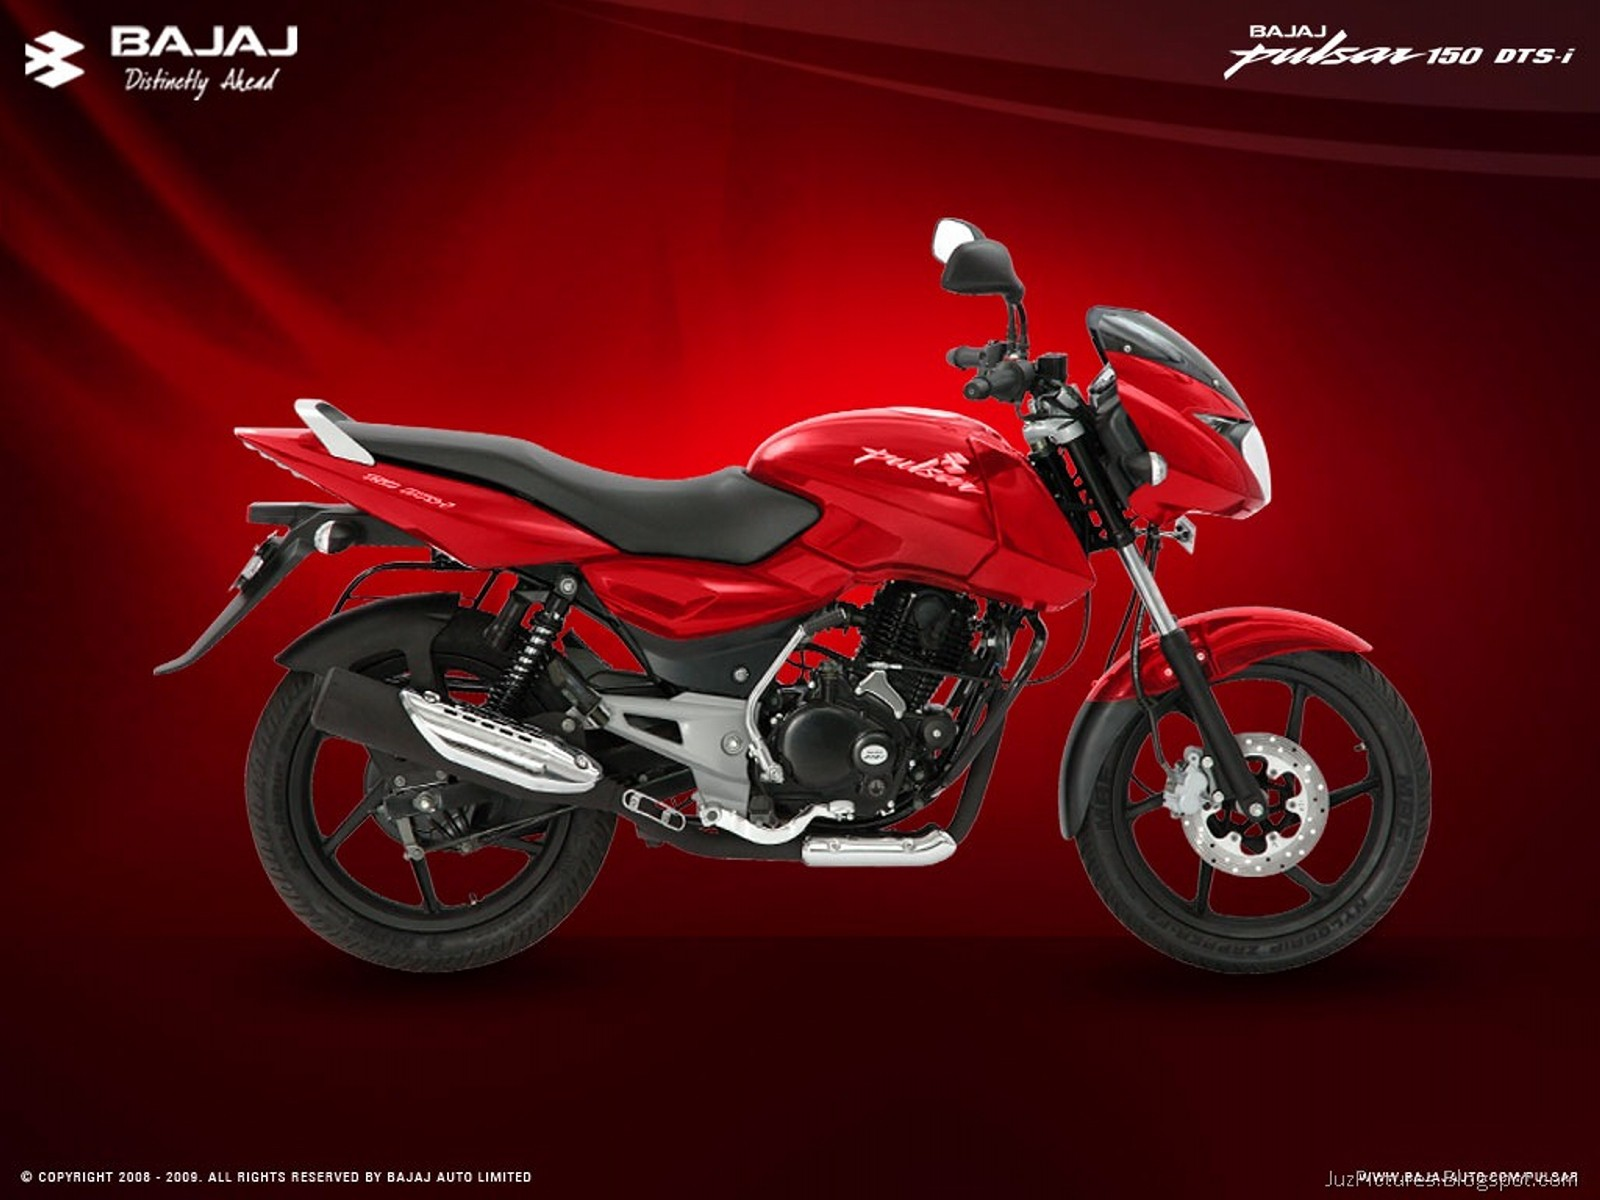 Pulsar 180 Black Hd Wallpapers All New Pix1 Bajaj Pulsar Hd Wallpaper